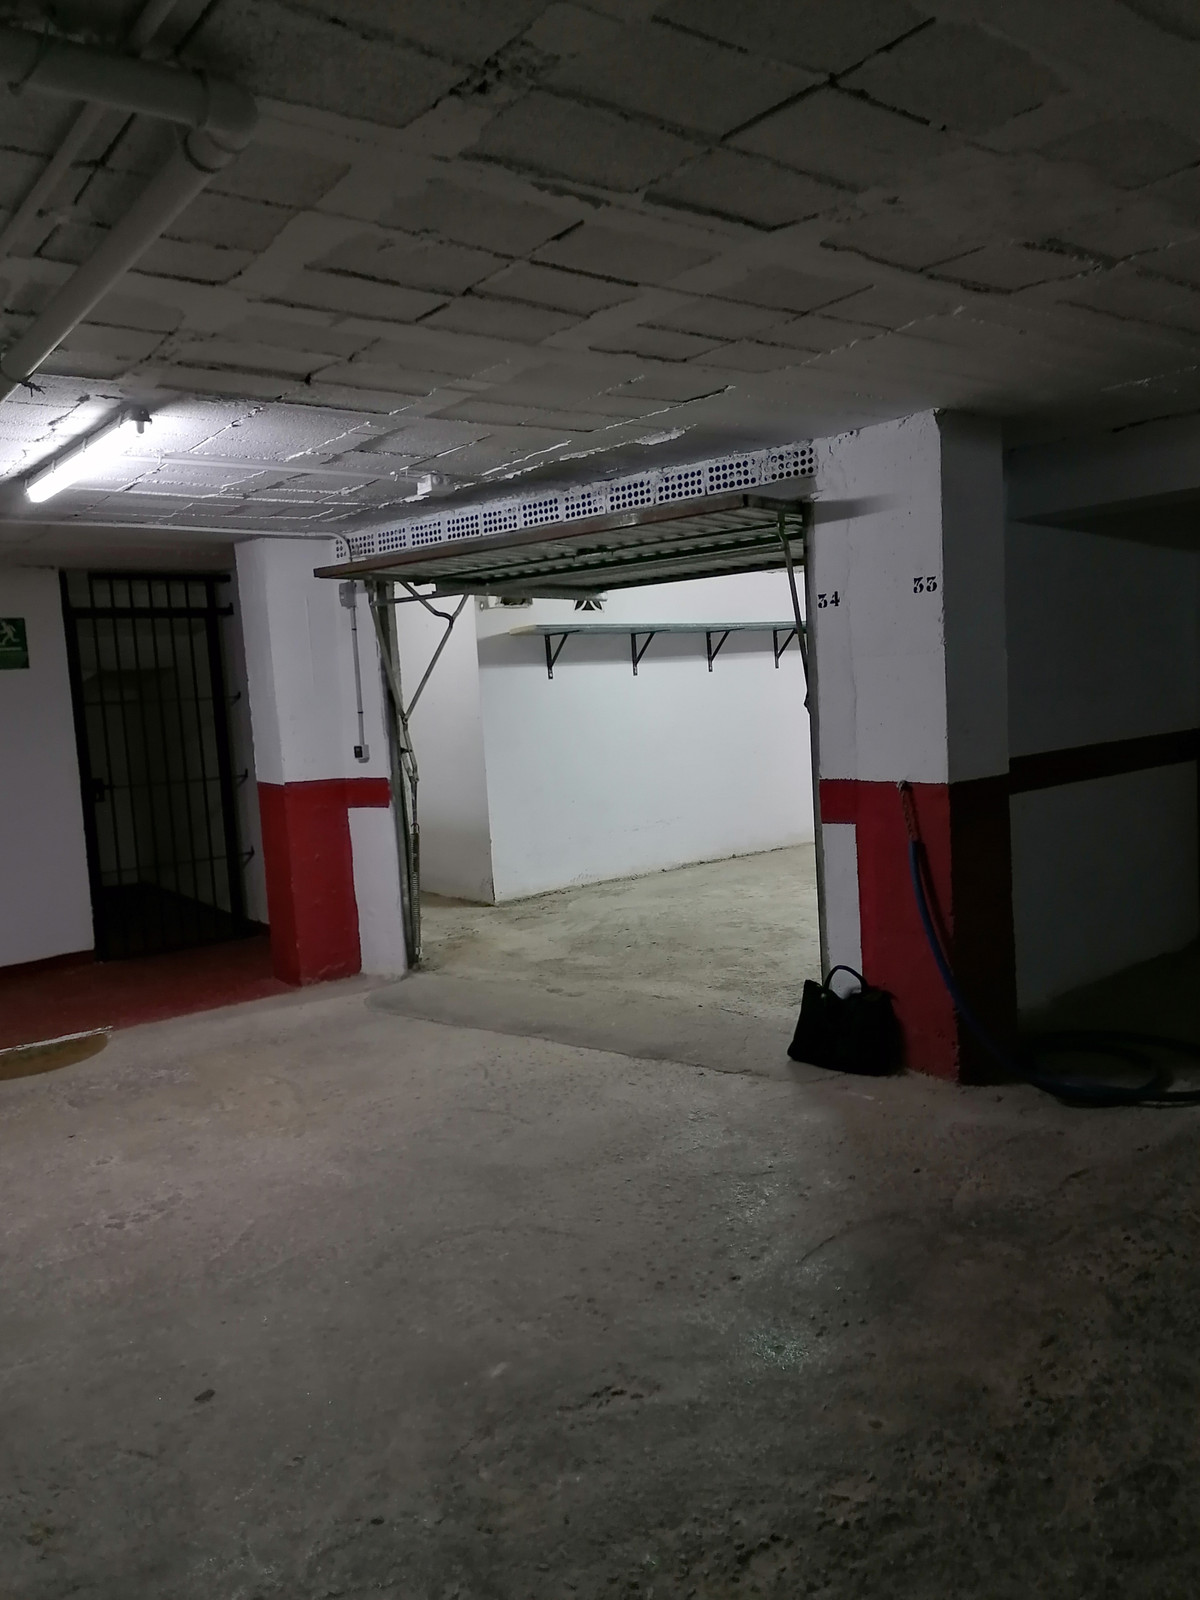 PARKING FOR TWO VEHICLES ONLINE, CLOSED GARAGE BOX TYPE IN URBANIZATION GARAGE WITH LARGE ACCESS STR,Spain